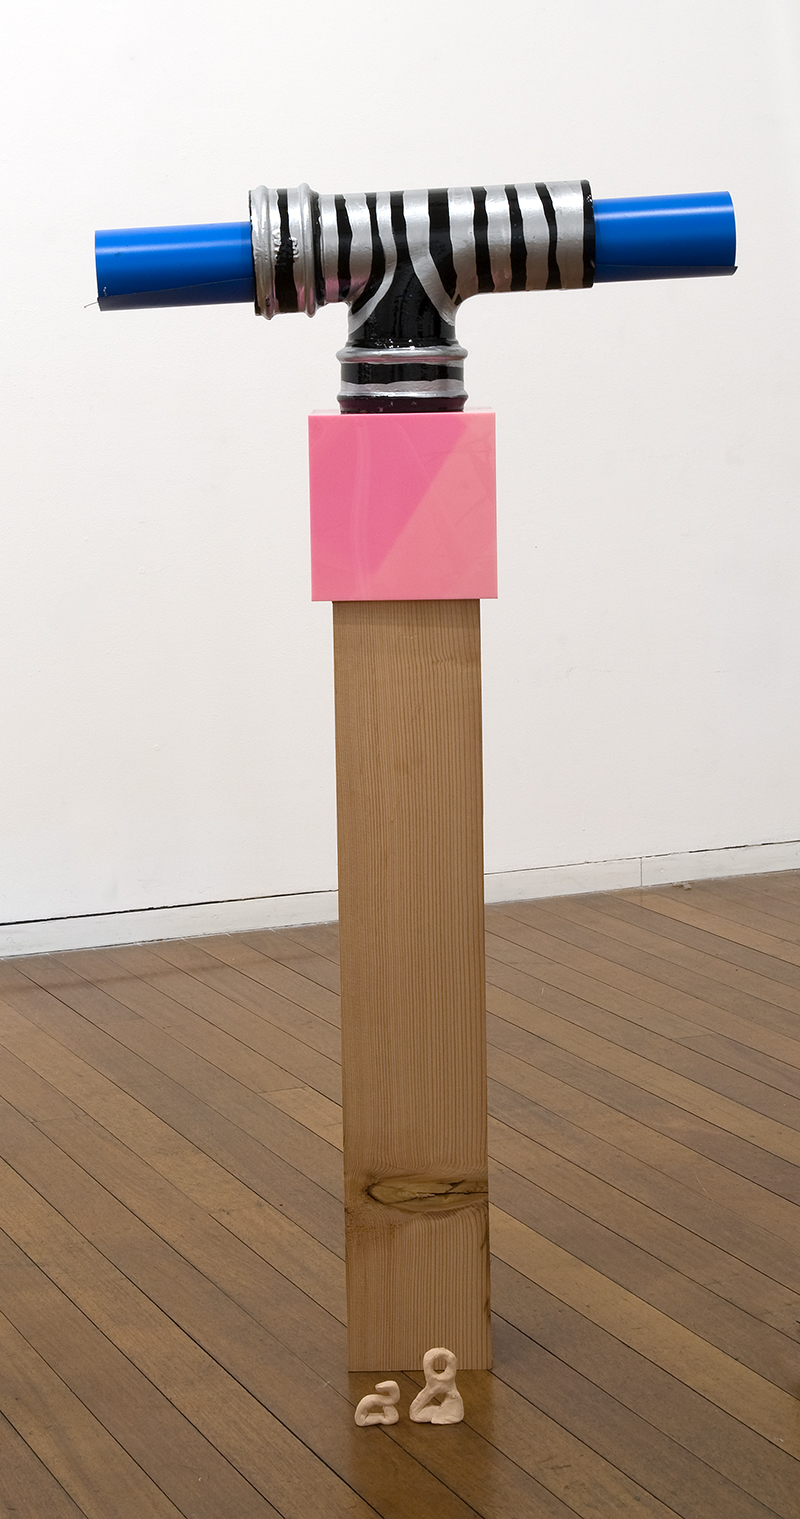 Mikala Dwyer - Outfield, 2009, Roslyn Oxley9 Gallery, Sydney